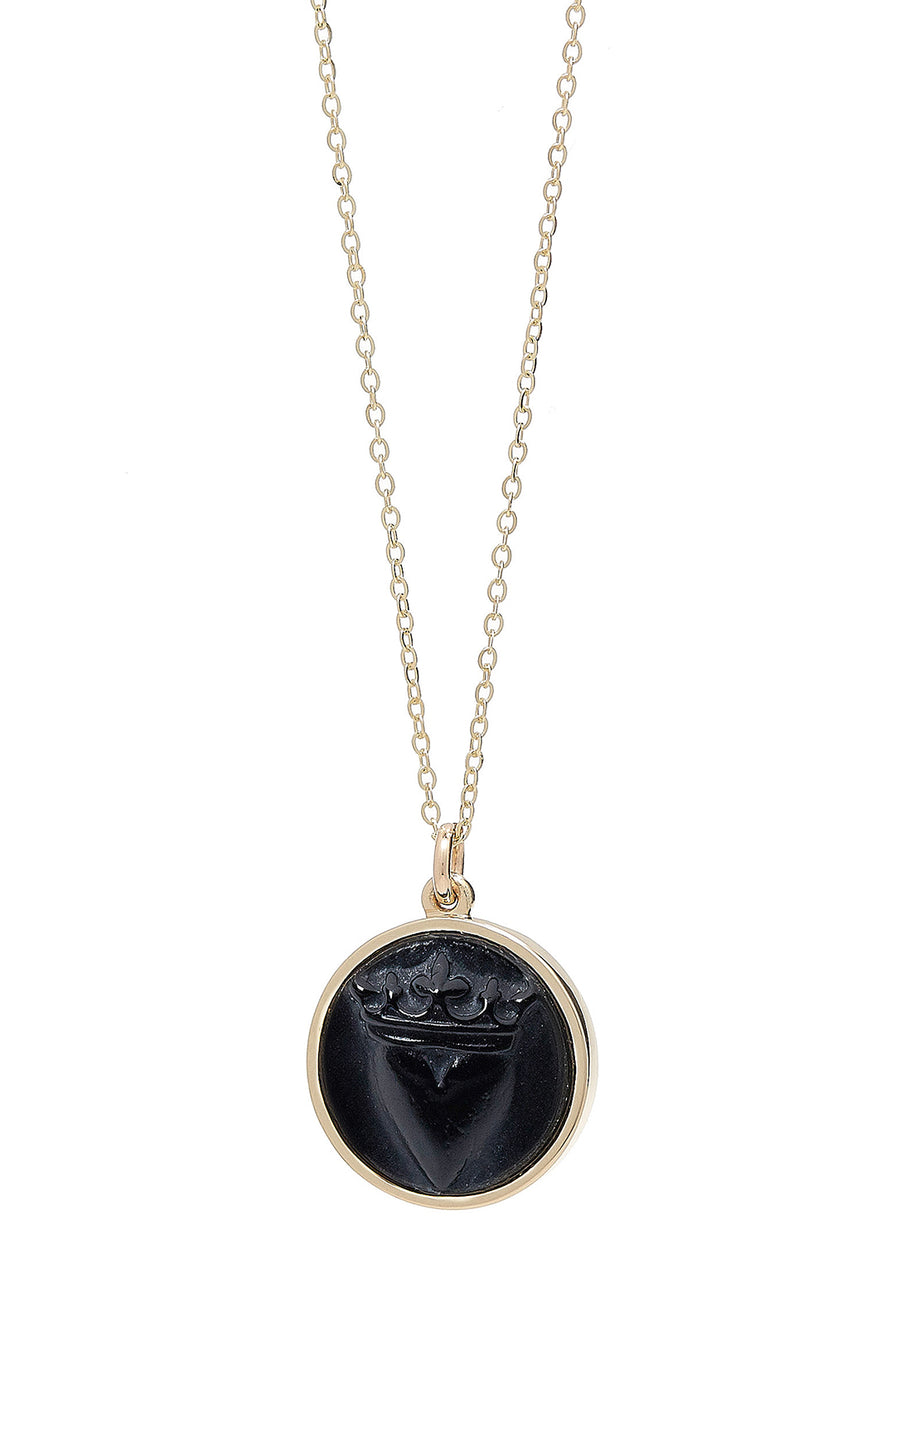 CROWNED HEART RAISED INTAGLIO PENDANT